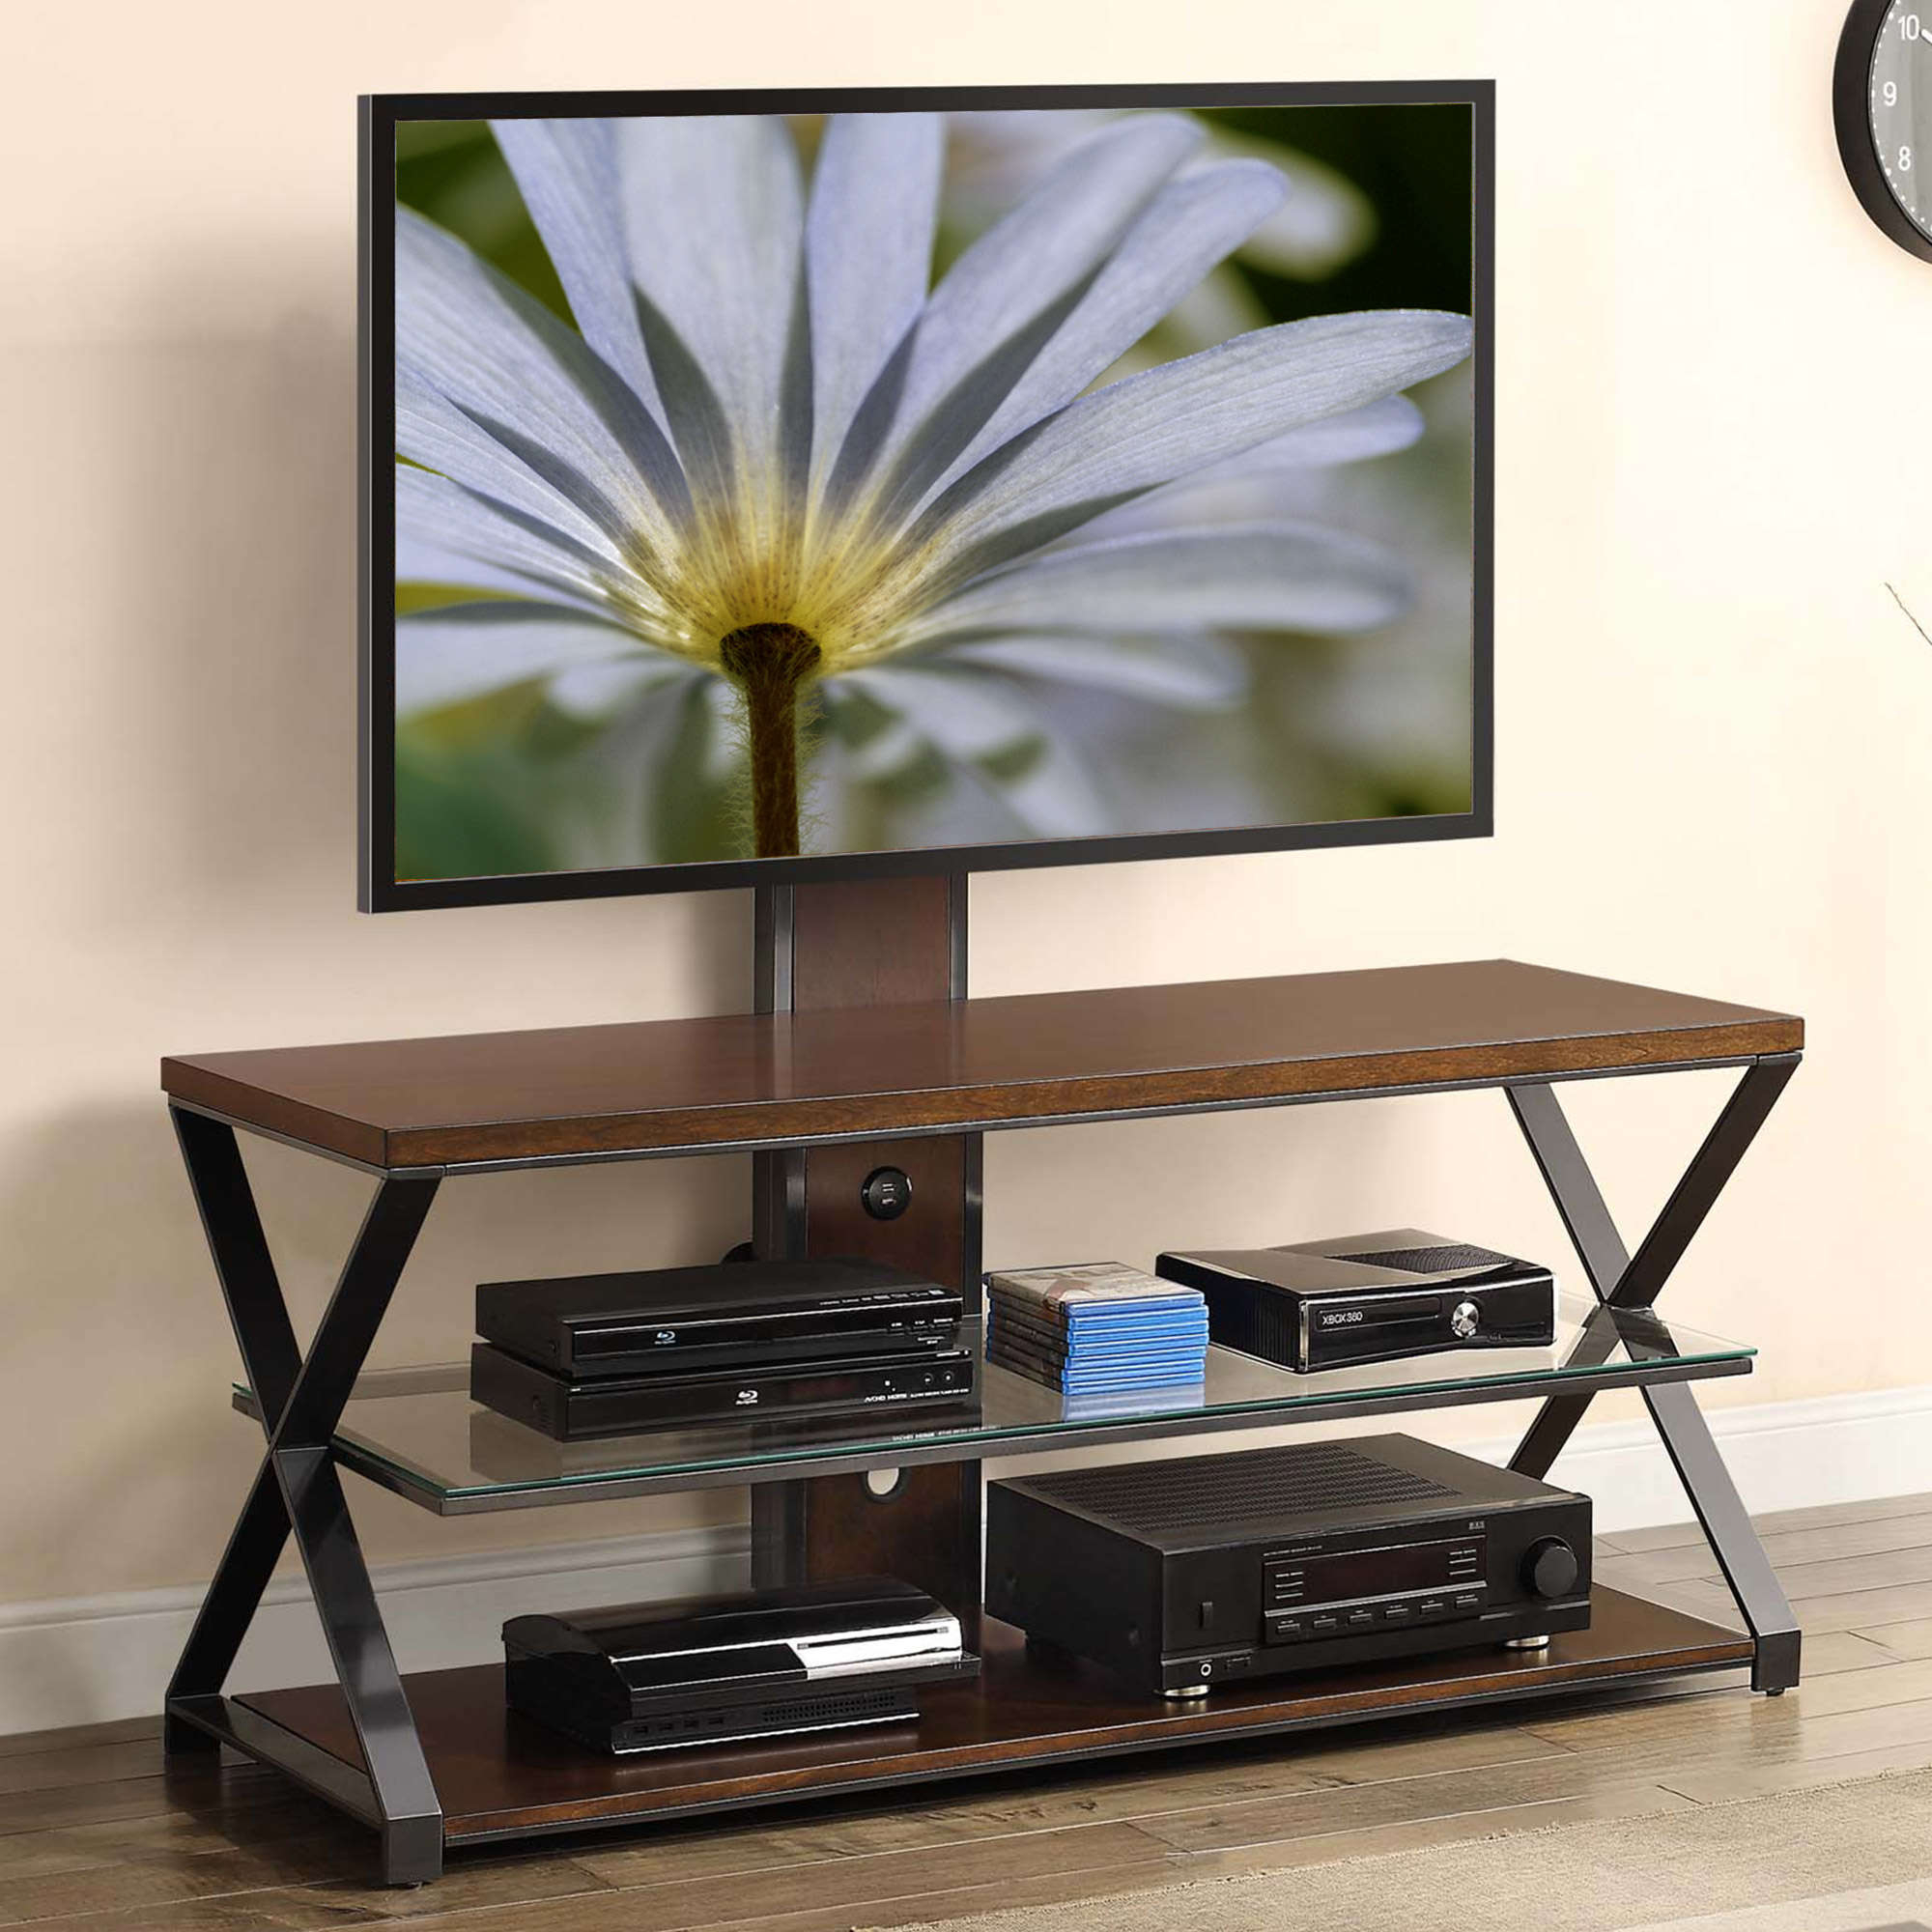 "Jaxon 3-In-1 Cognac Tv Stand For Tvs Up To 70"" - Walmart intended for Jaxon 65 Inch Tv Stands (Image 13 of 30)"